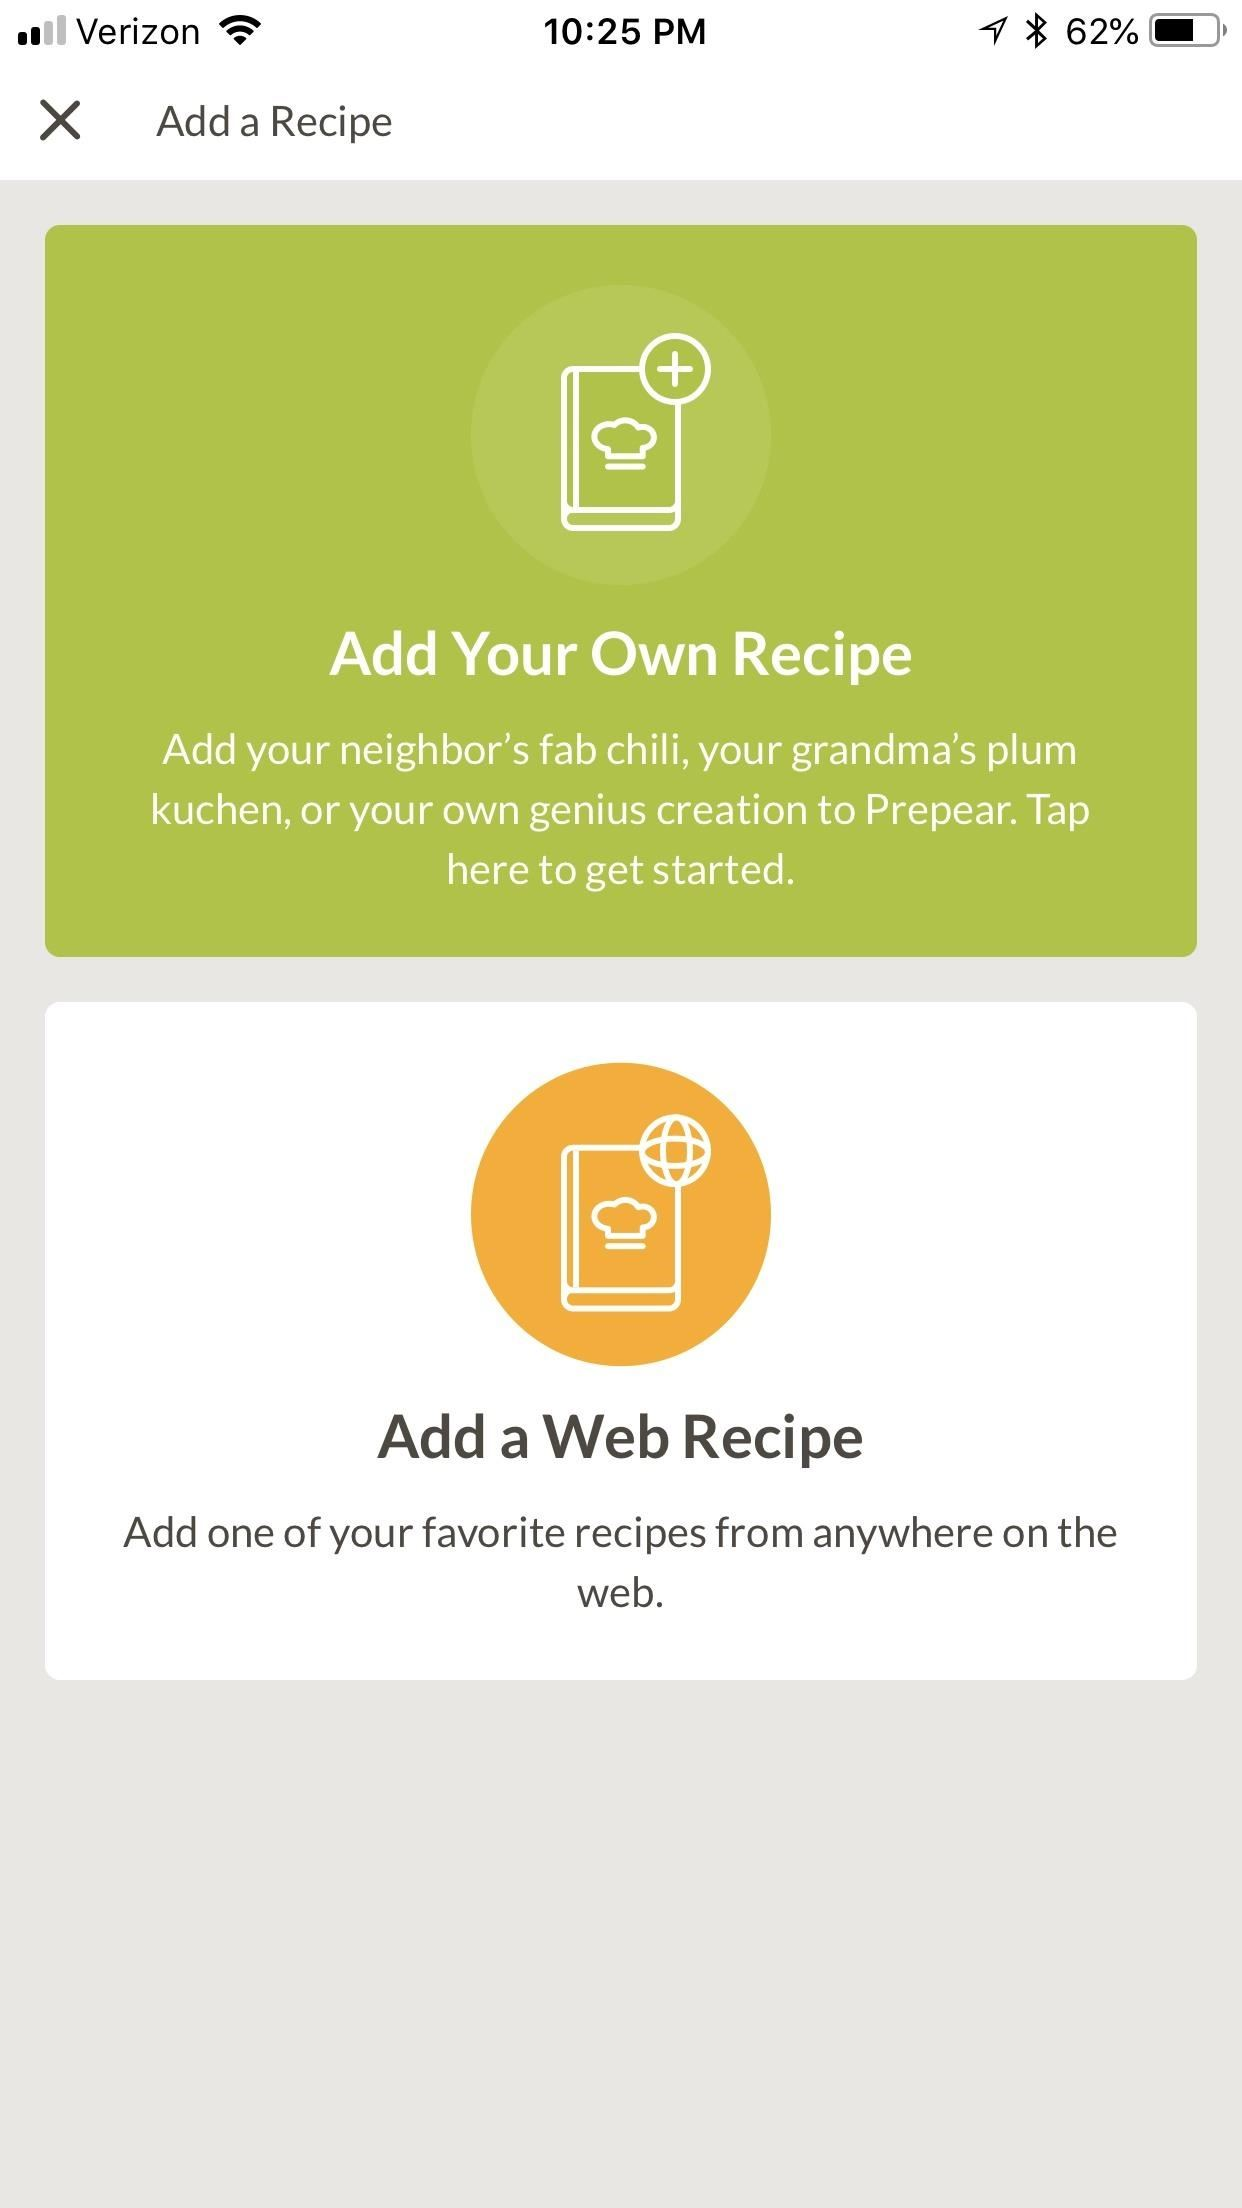 Catalog & Save Recipes from Any Site to Your Smartphone